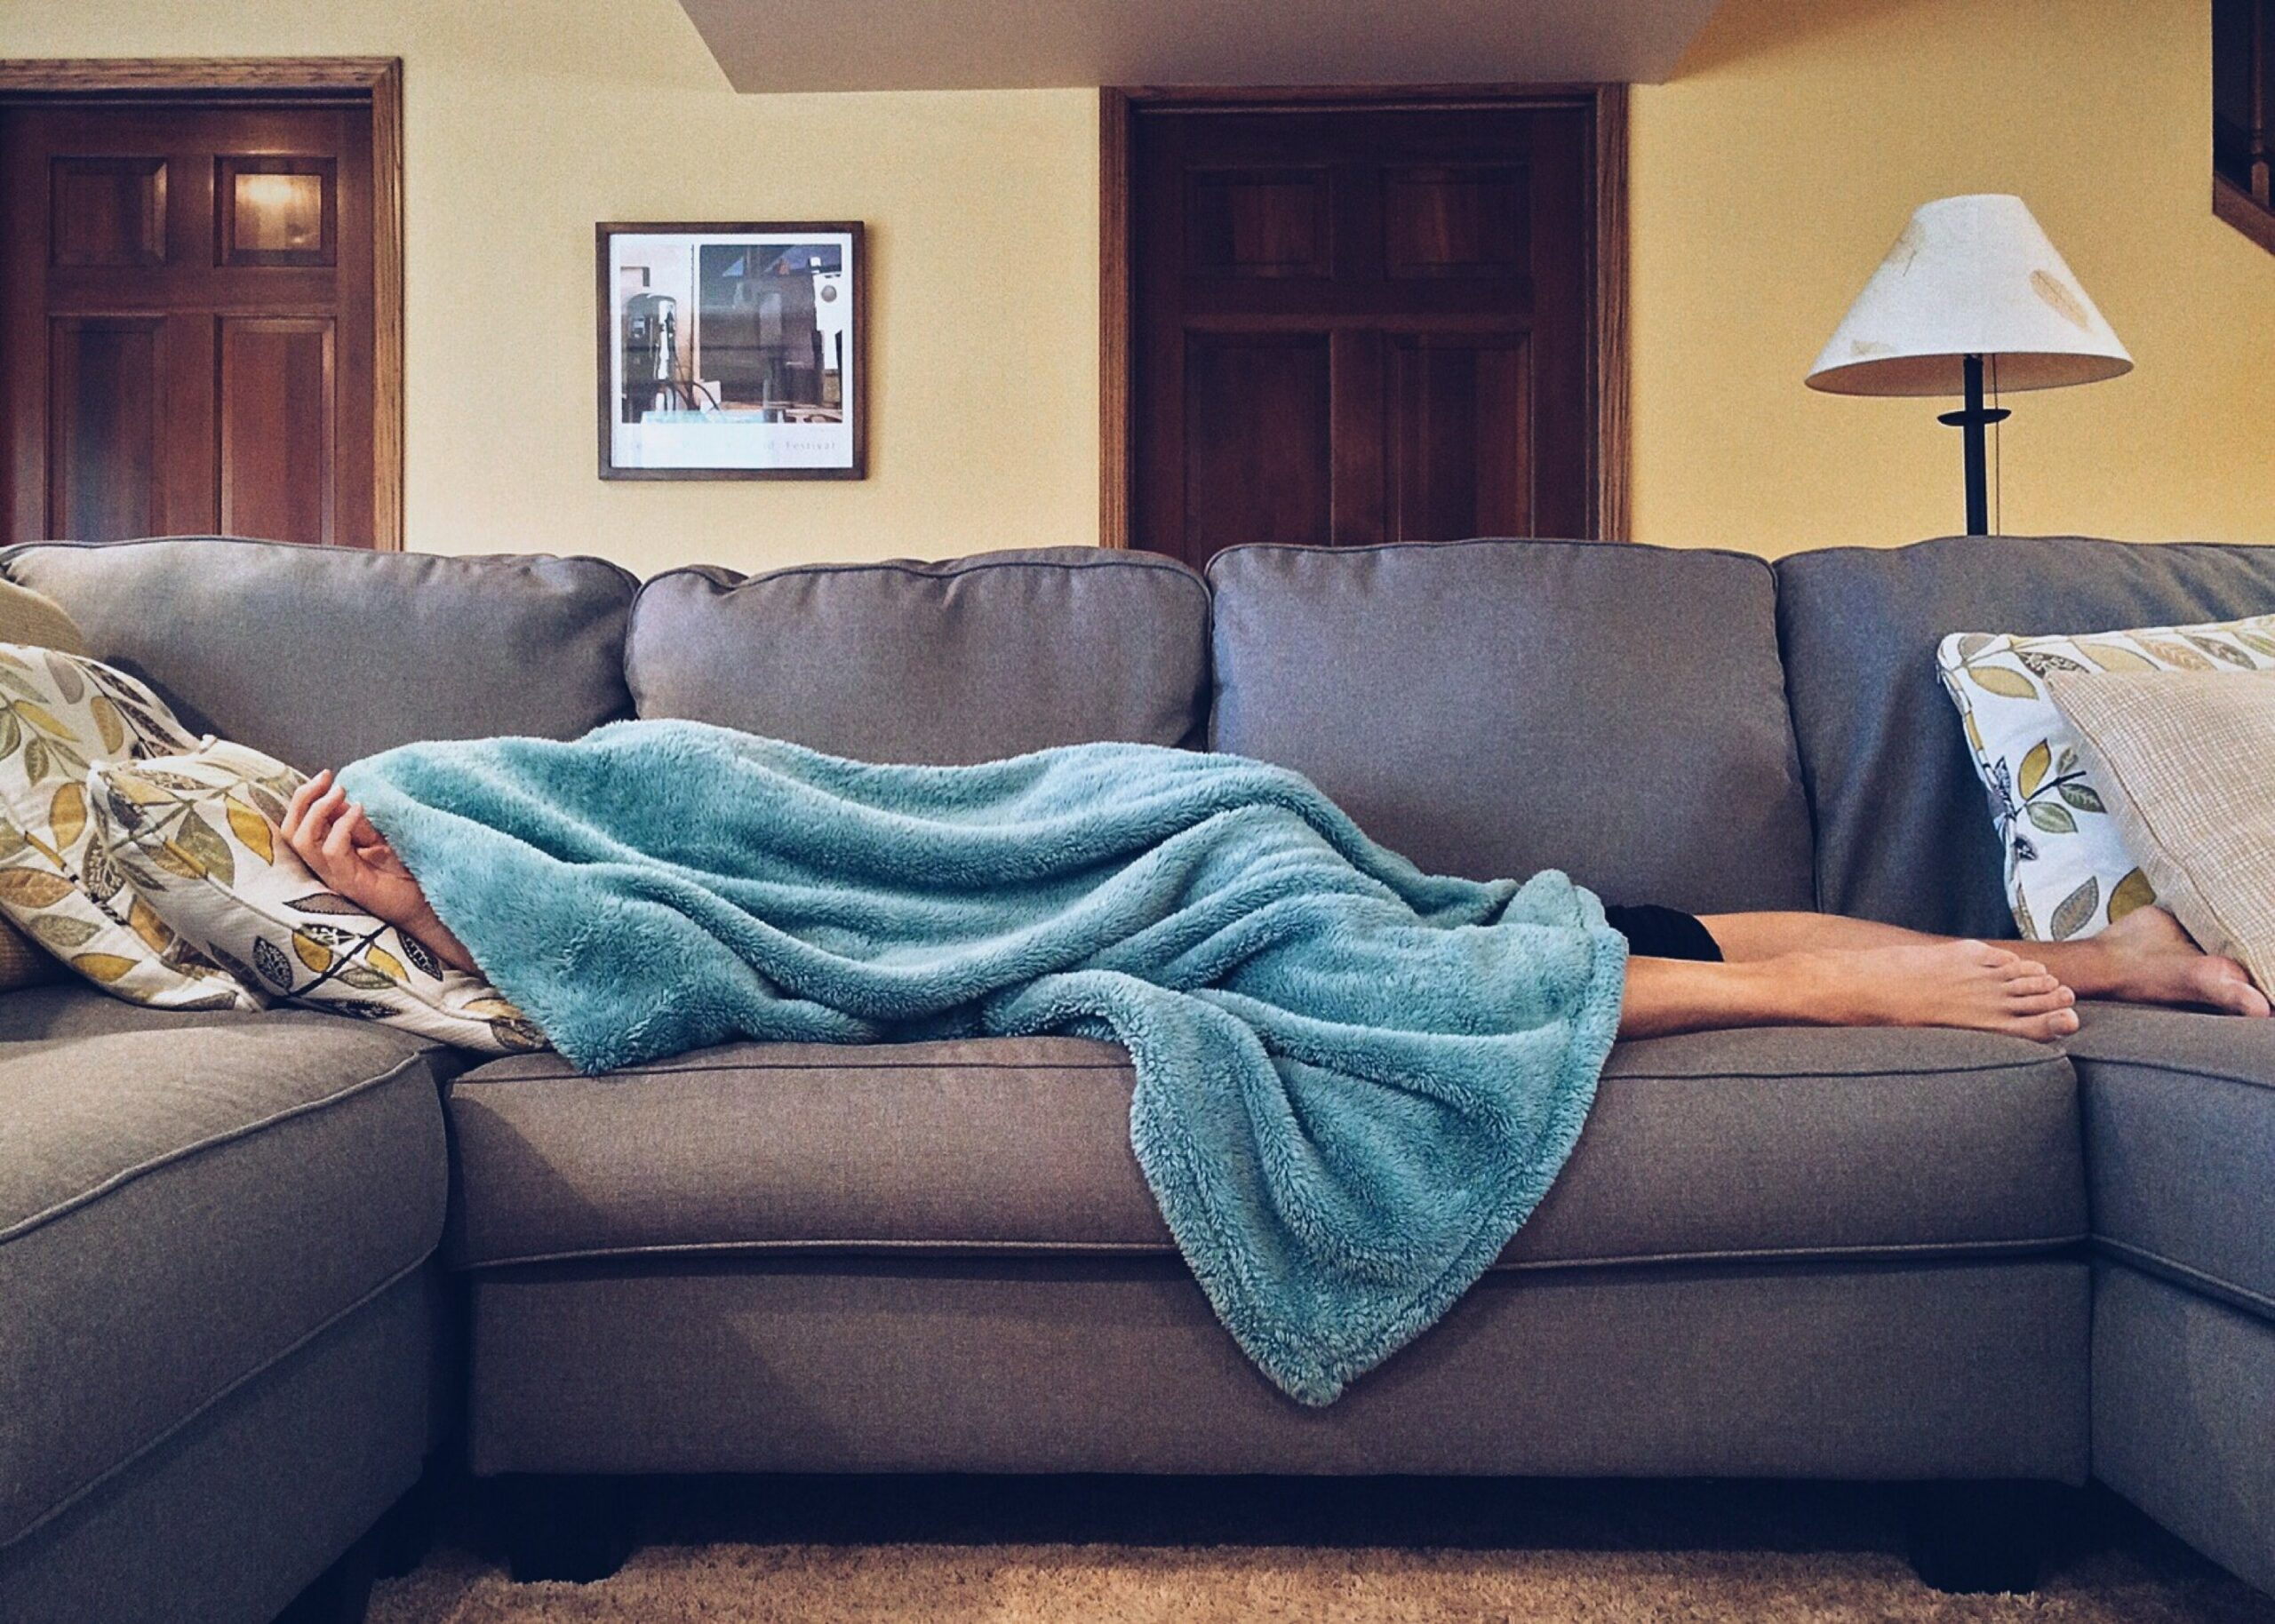 What To Do About The Flu